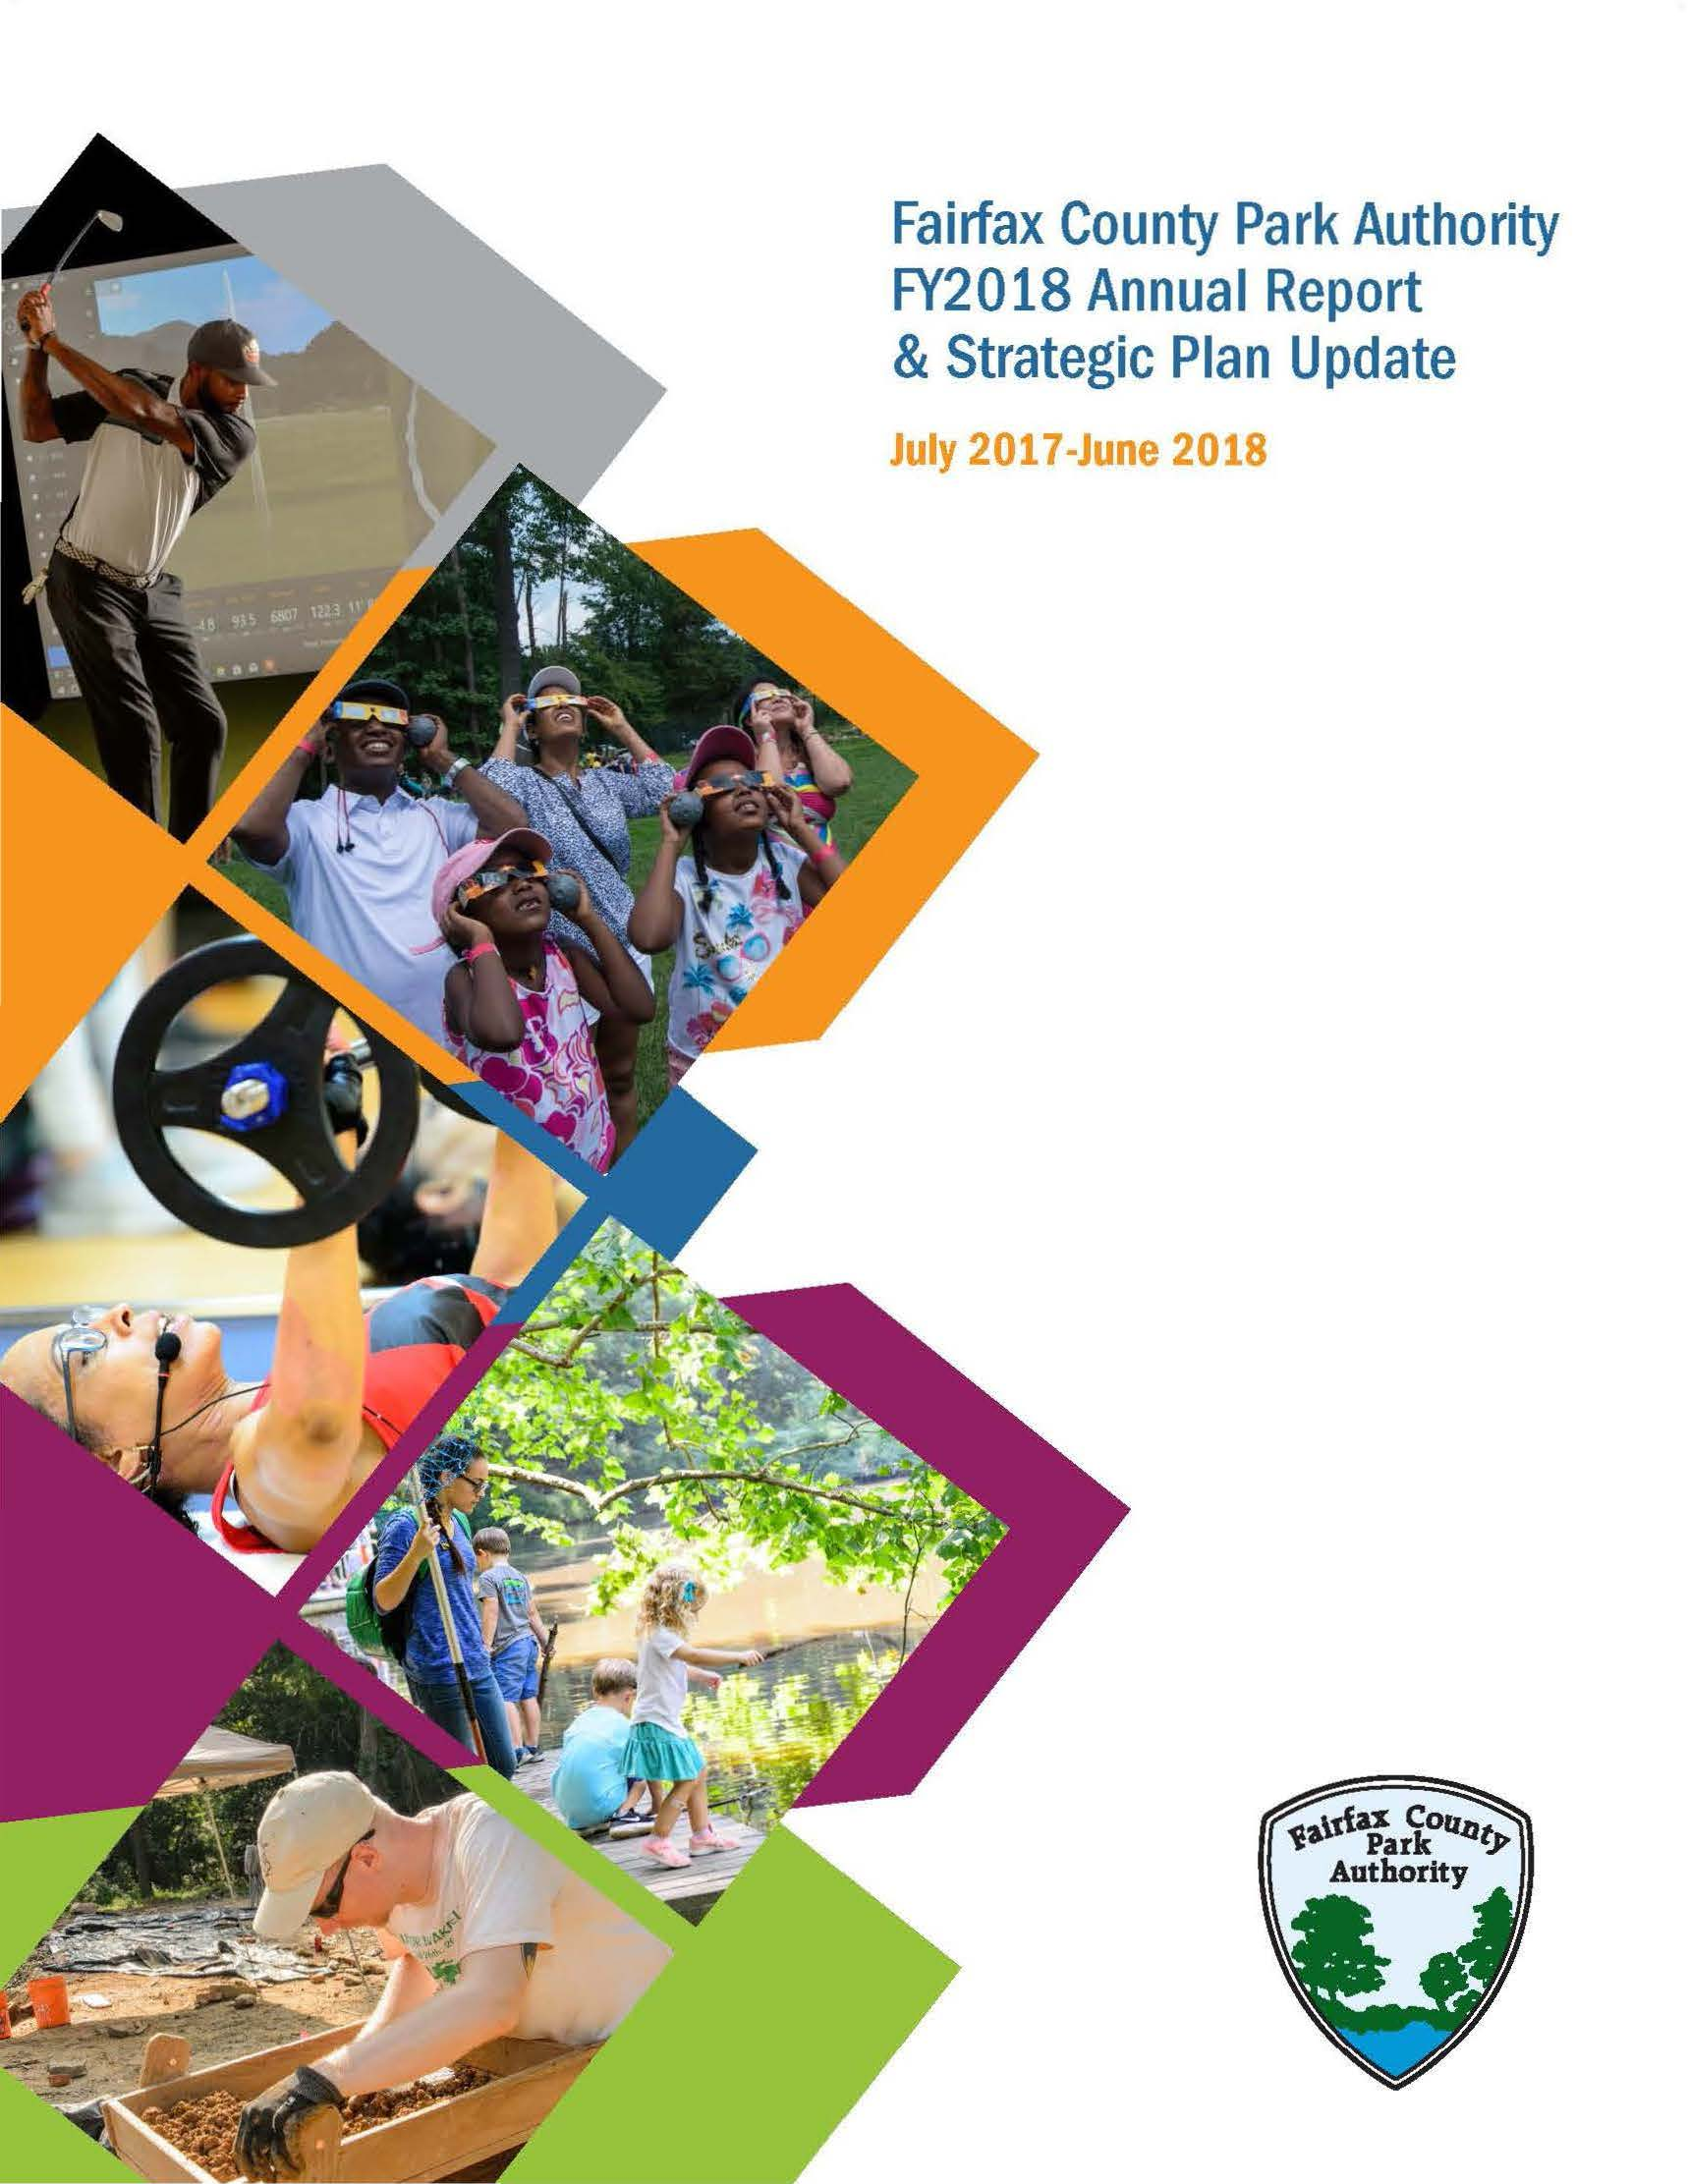 FY18 Strategic Plan and Annual Report